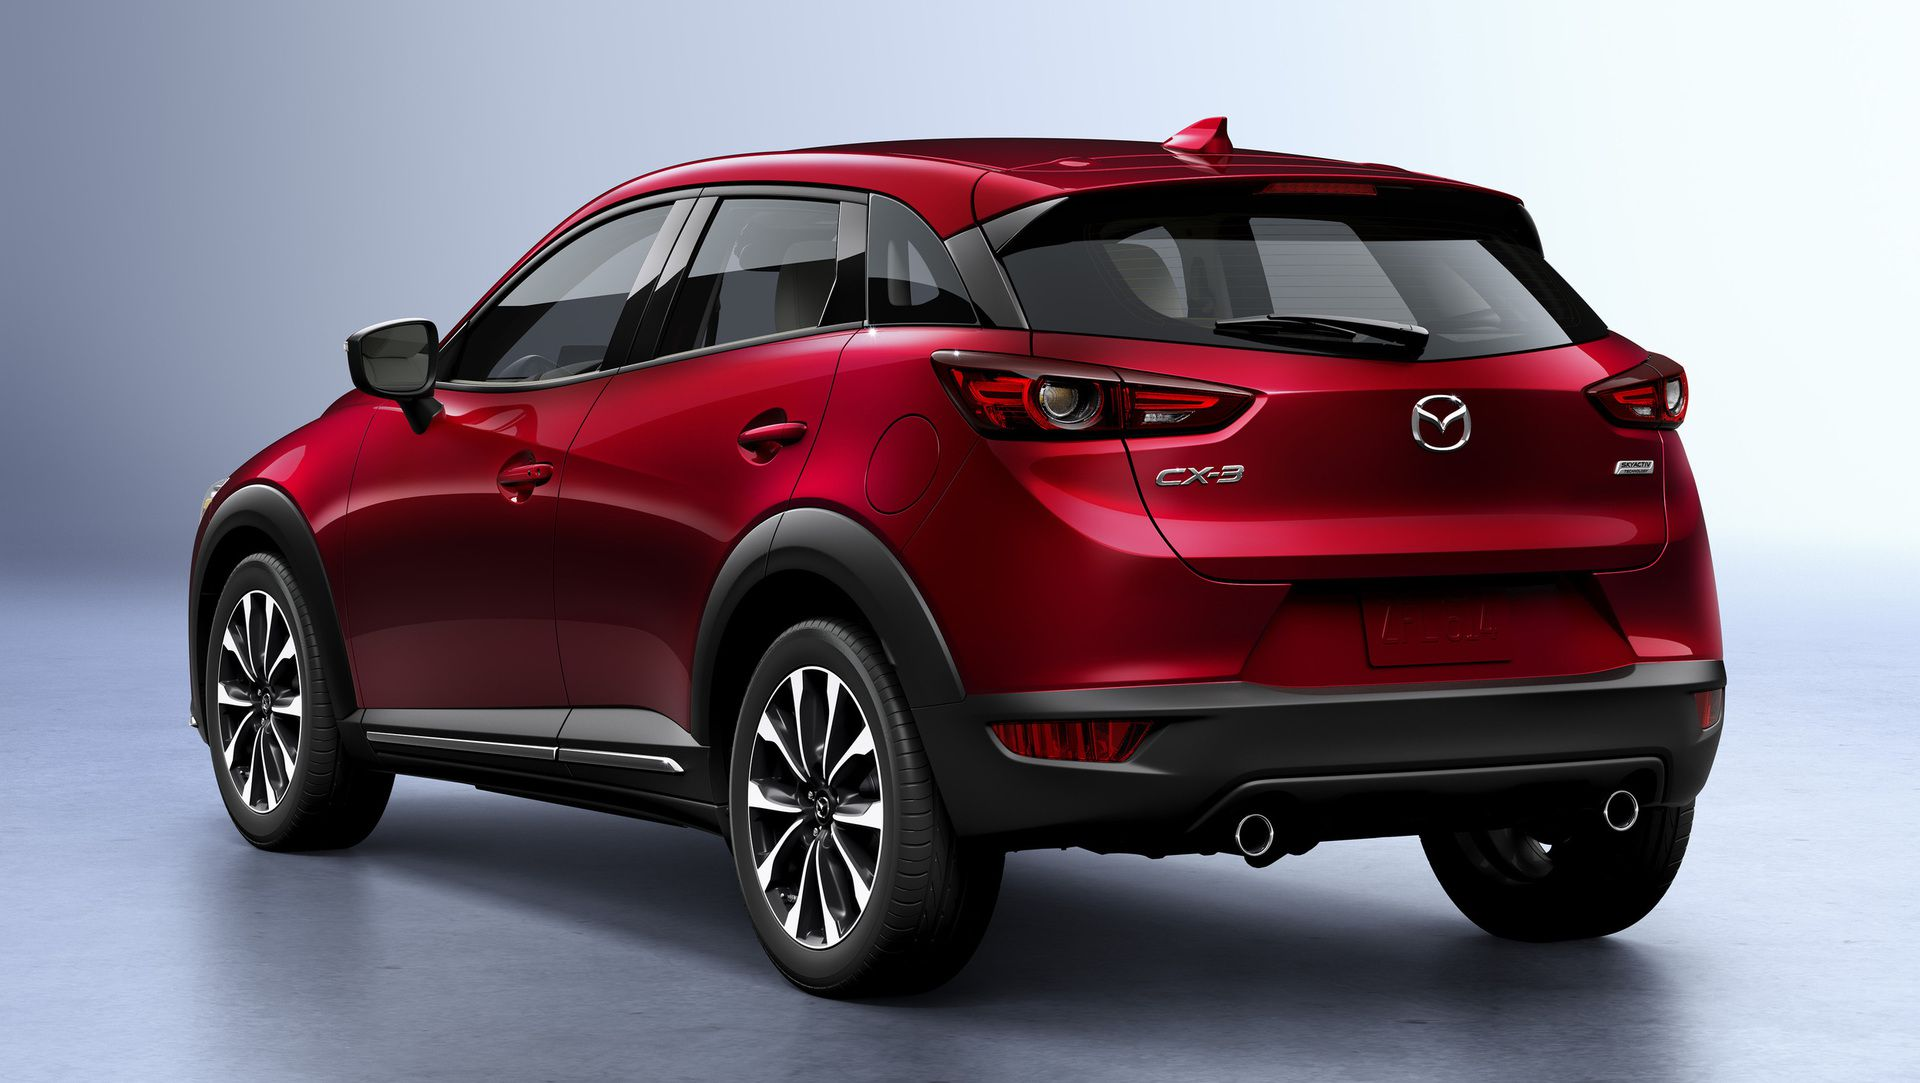 2019 mazda cx 3 crossover updated with a tad more power and refinement. Black Bedroom Furniture Sets. Home Design Ideas